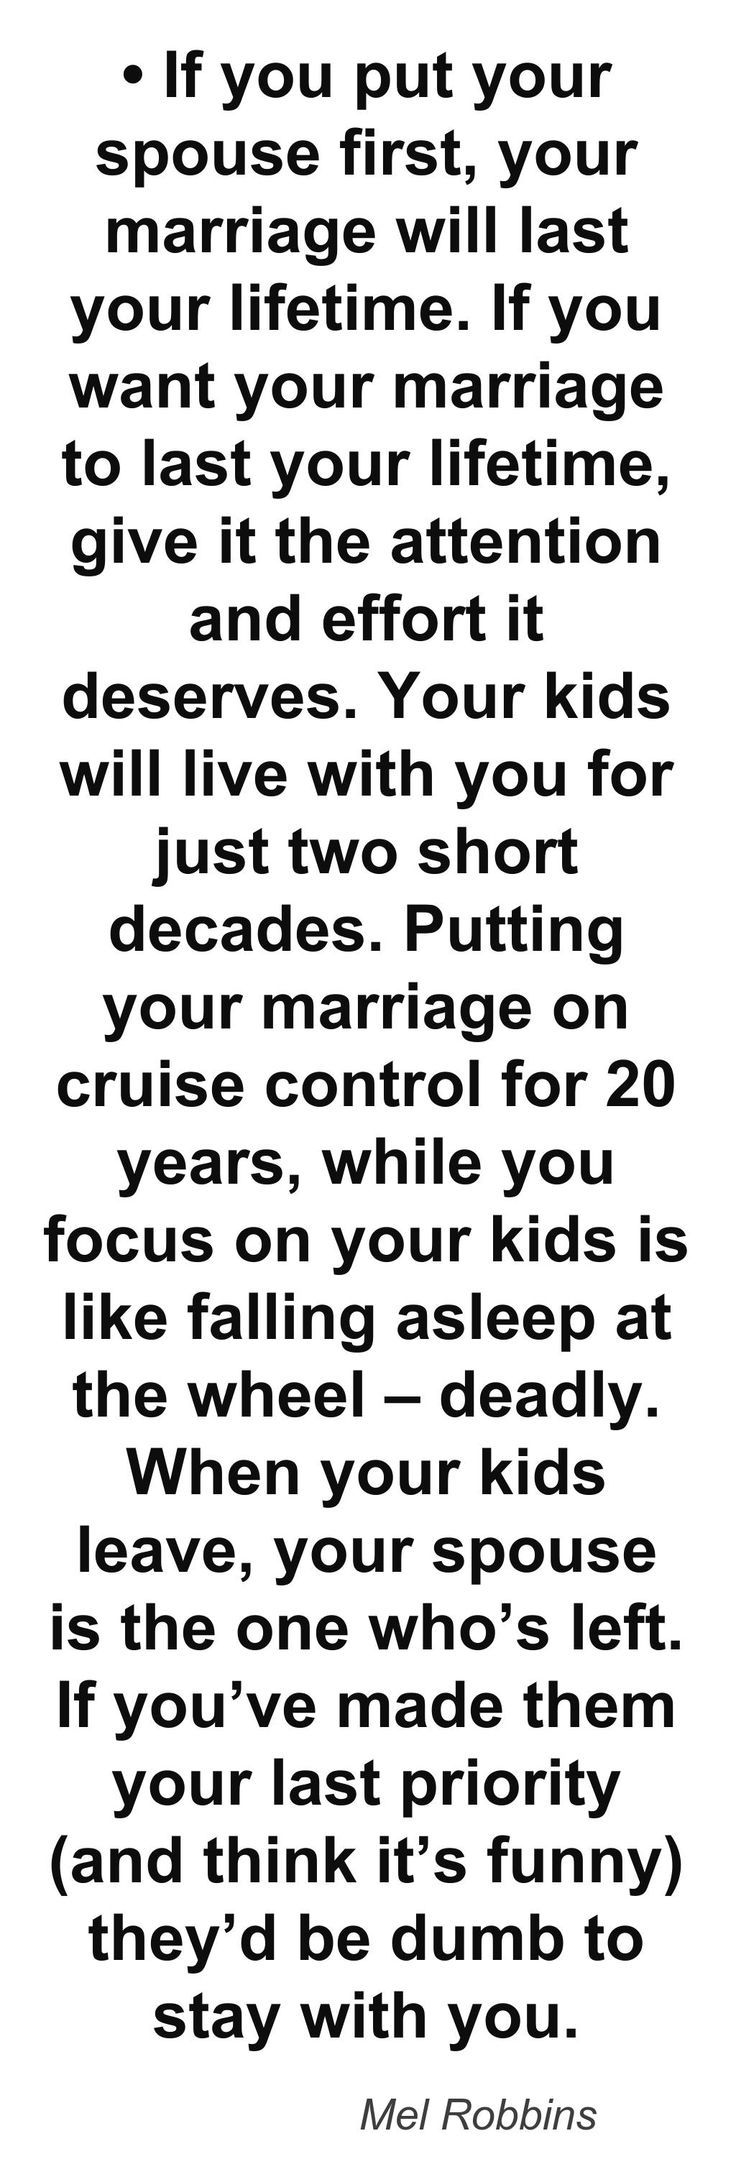 Pics photos funny wedding anniversary marriage christmas husband - Find This Pin And More On Love Quotes